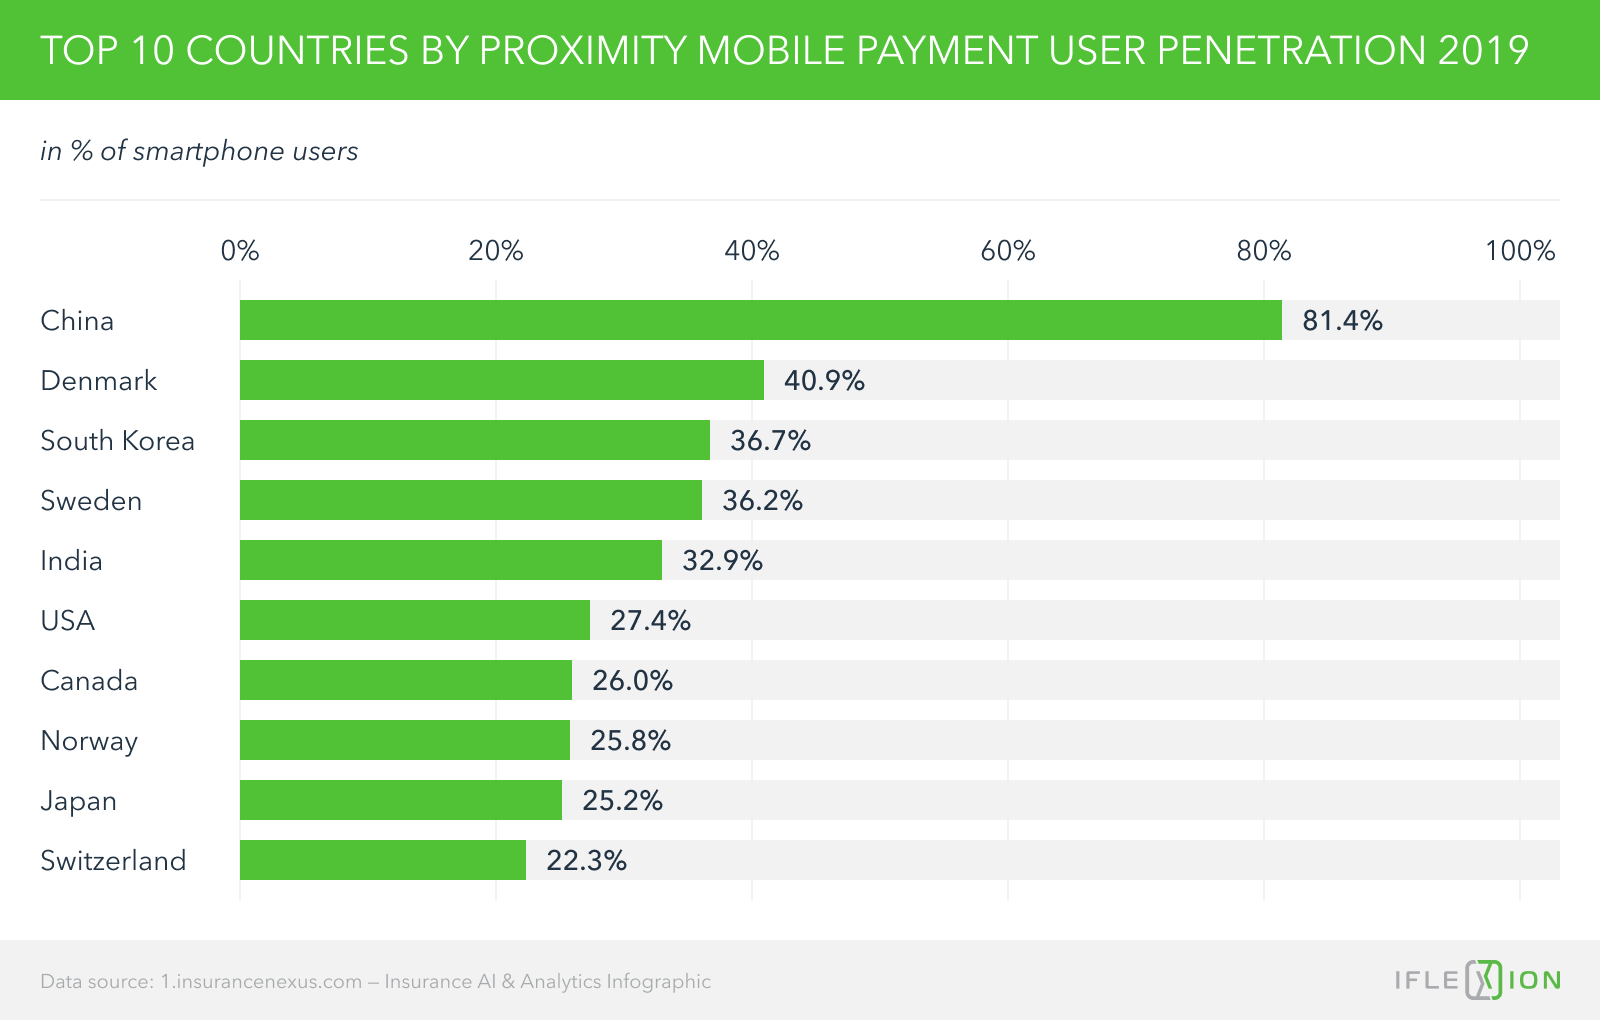 Top 10 countries by proximity mobile payment